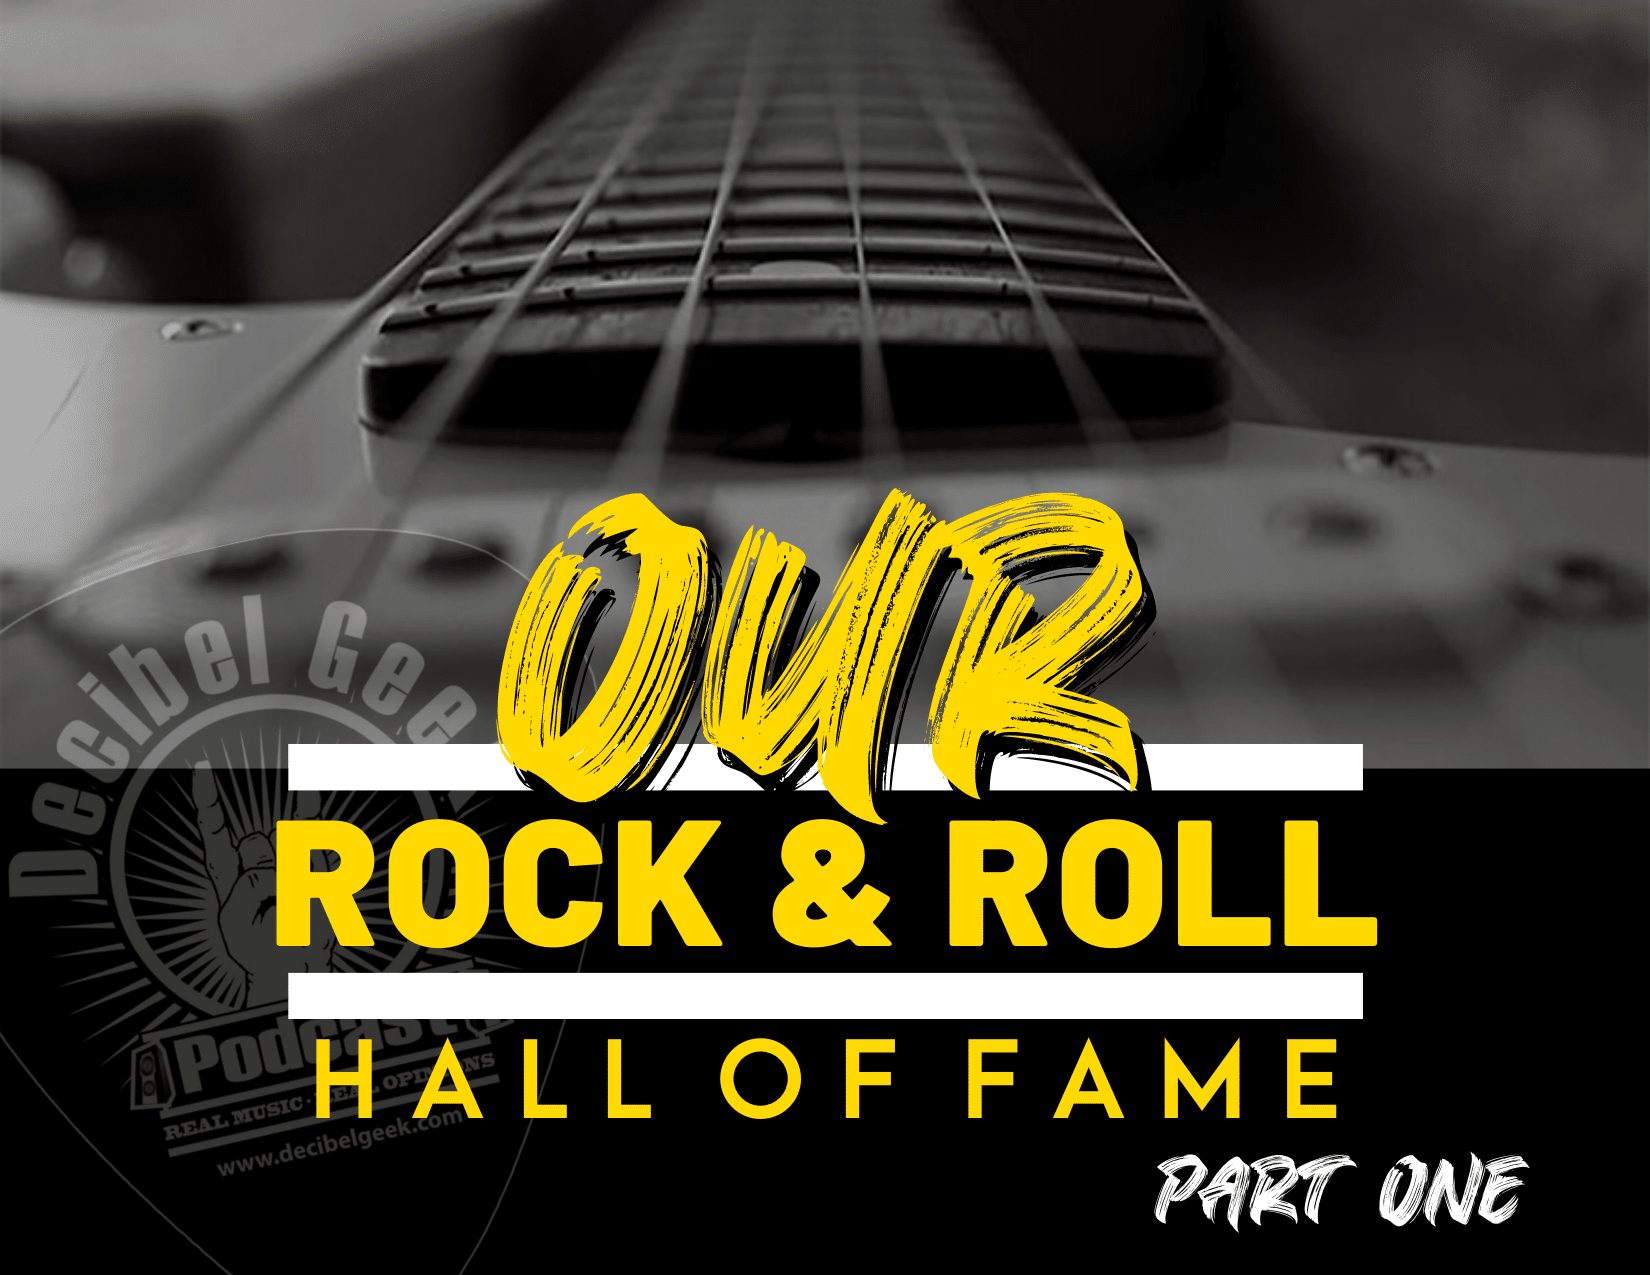 Rock & Roll Hall of Fame, decibel geek, podcast